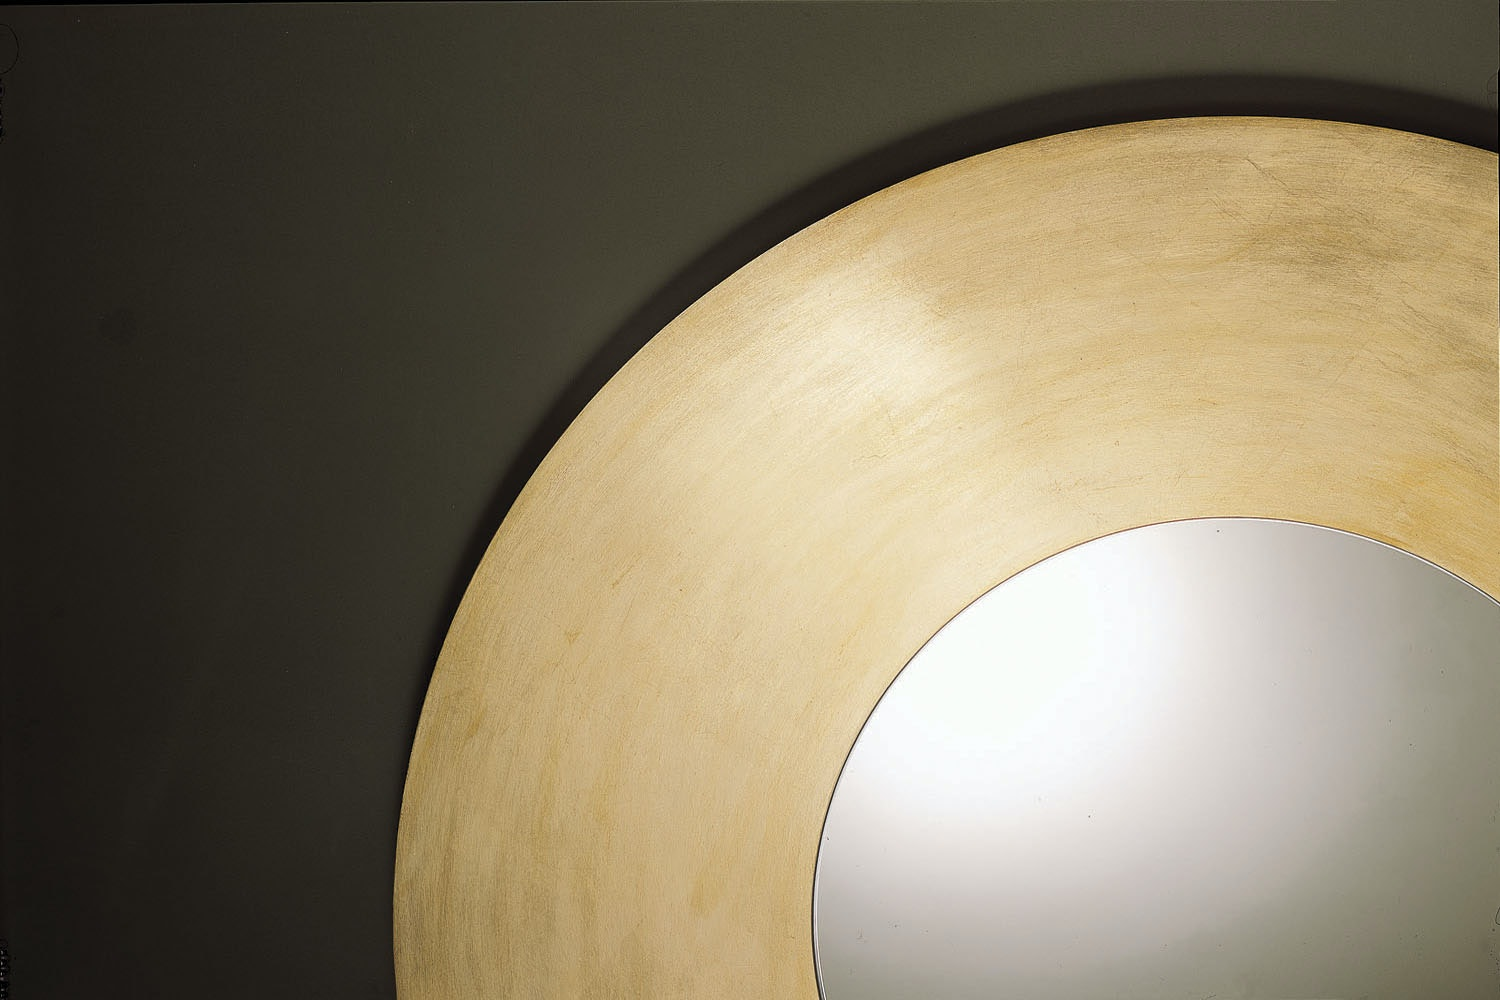 Lago Dorato Mirror by Lella & Massimo Vignelli for Acerbis